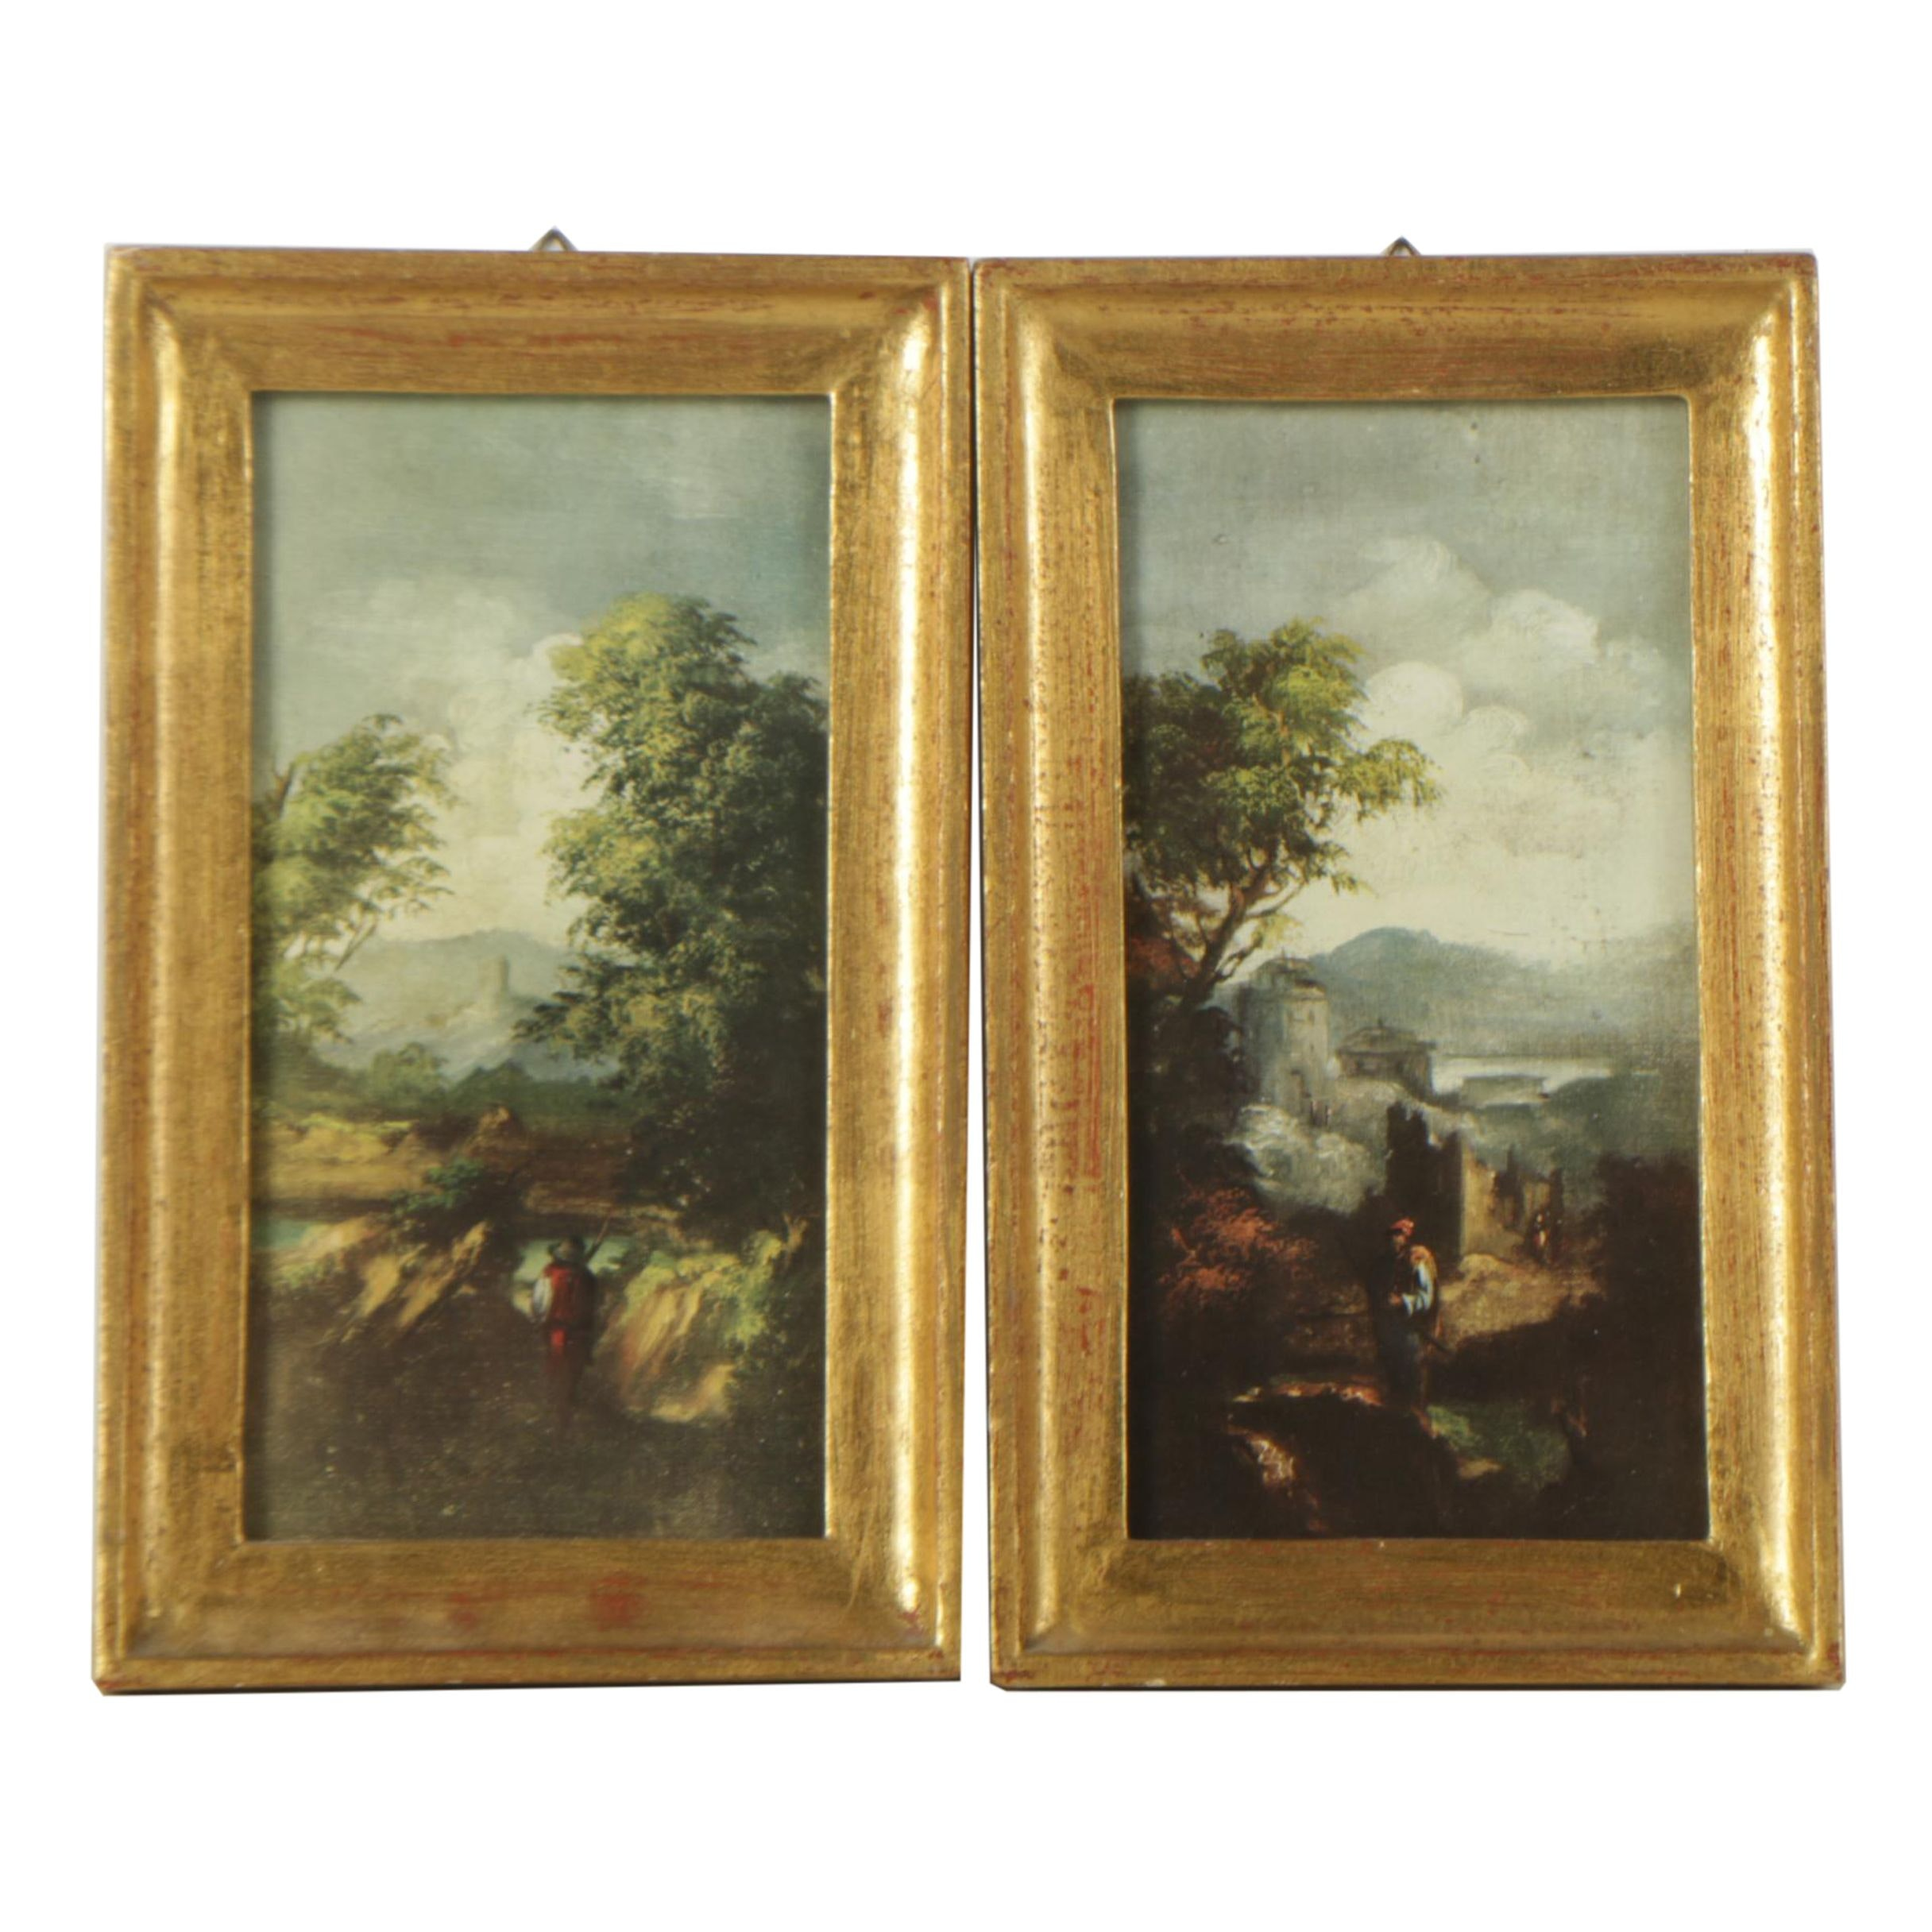 Offset Lithographs of Italian Landscapes